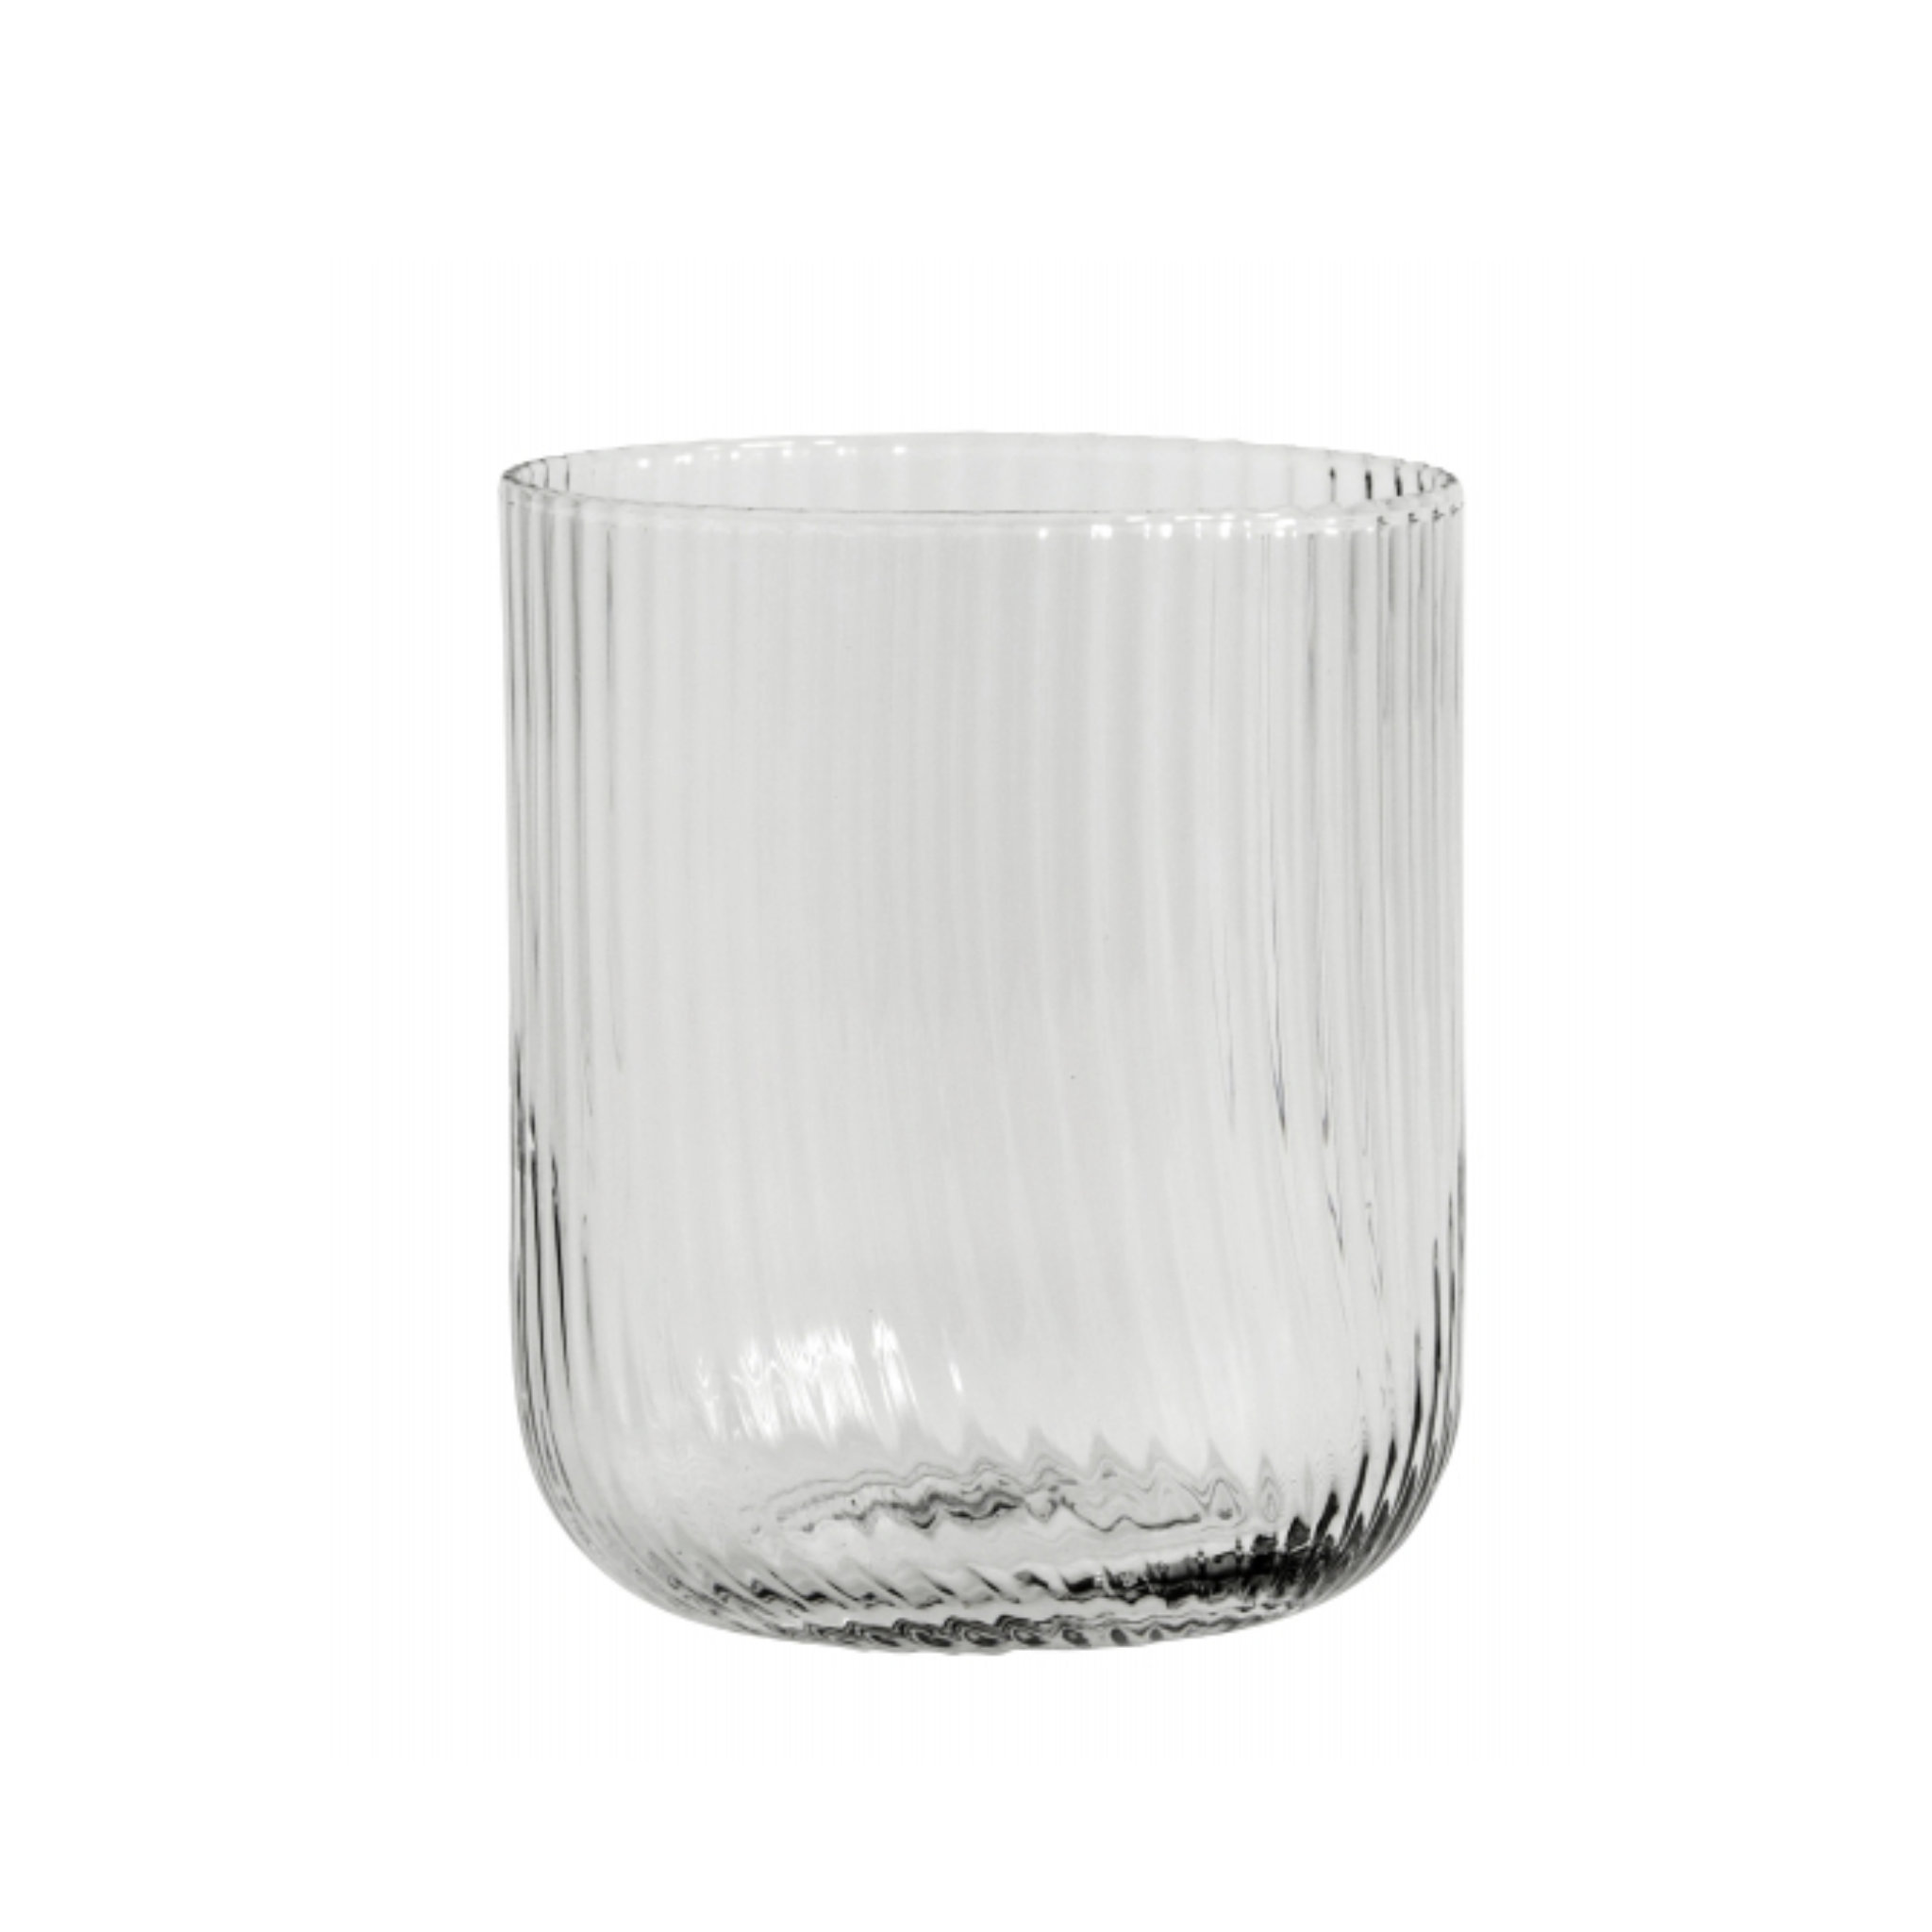 Nordal Rilla Drinking Glass